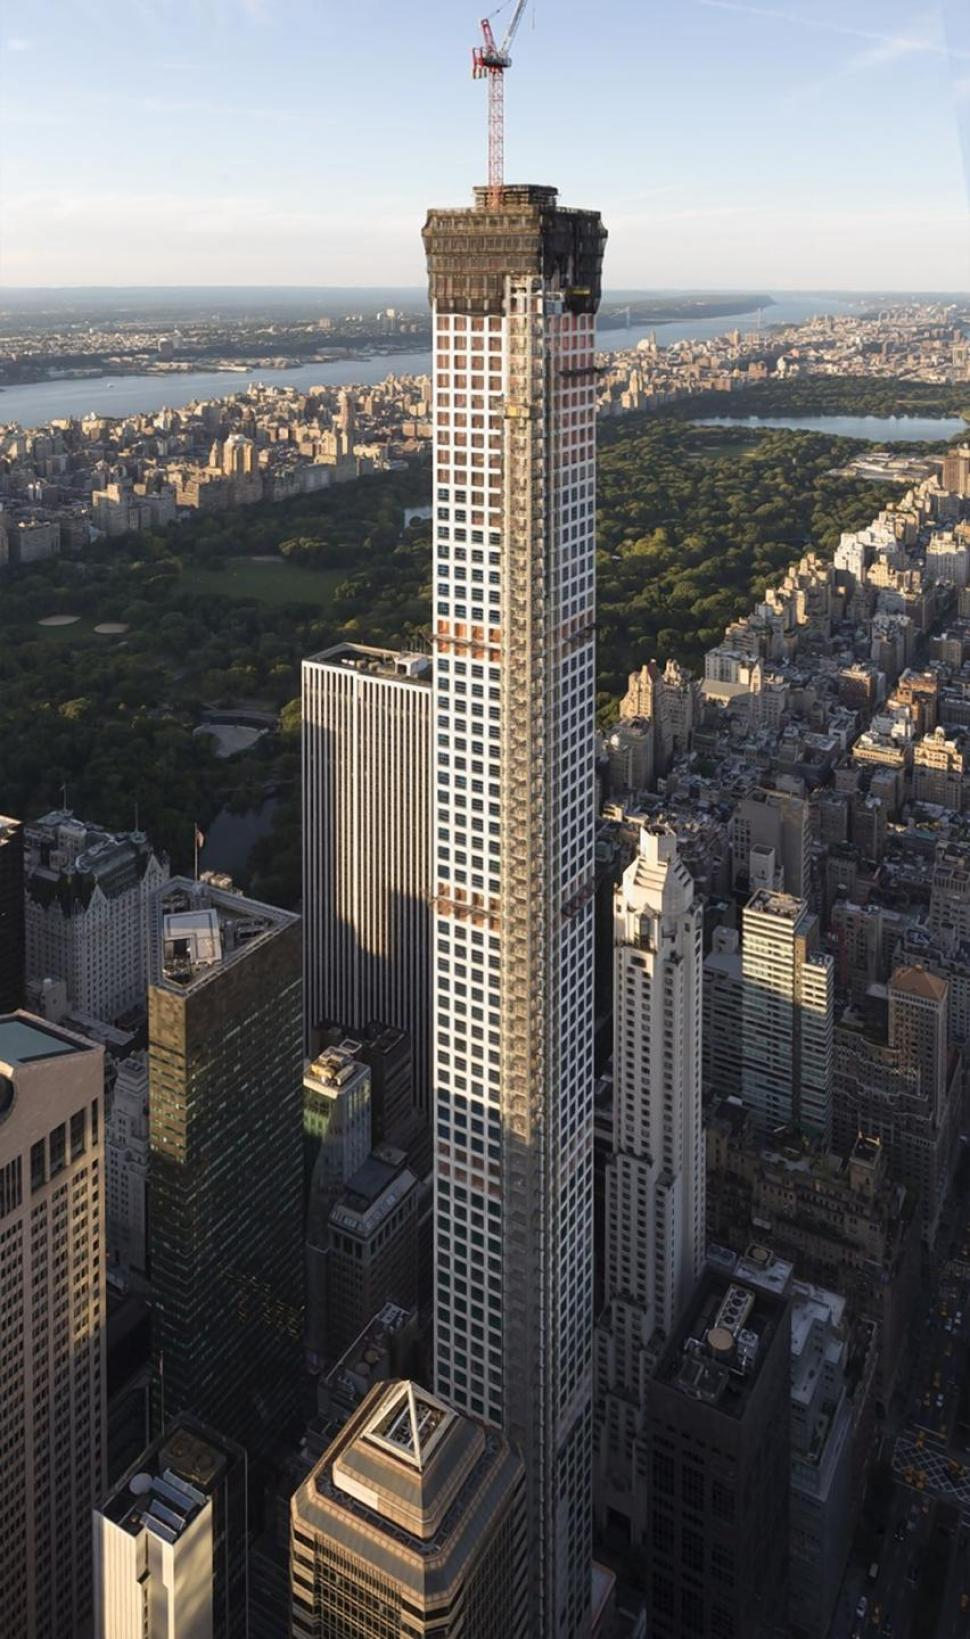 Nyc Construction - 432 park avenue the tallest residential building in the western hemisphere